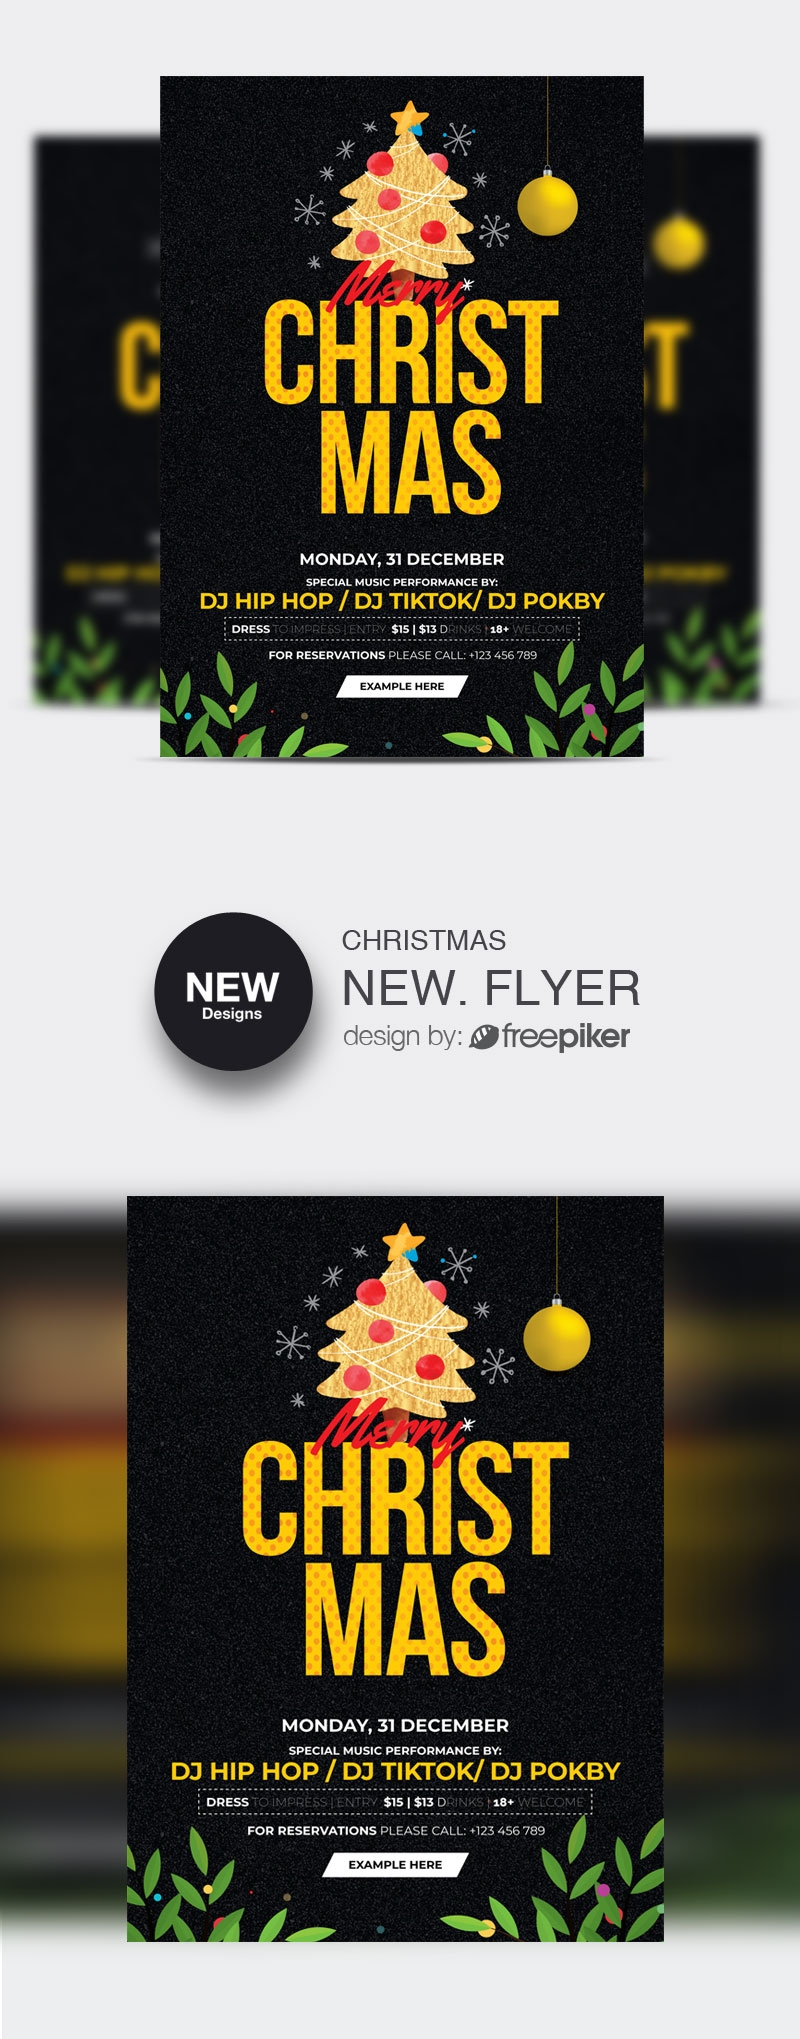 Christmas Flyer Template With Dark & Golden